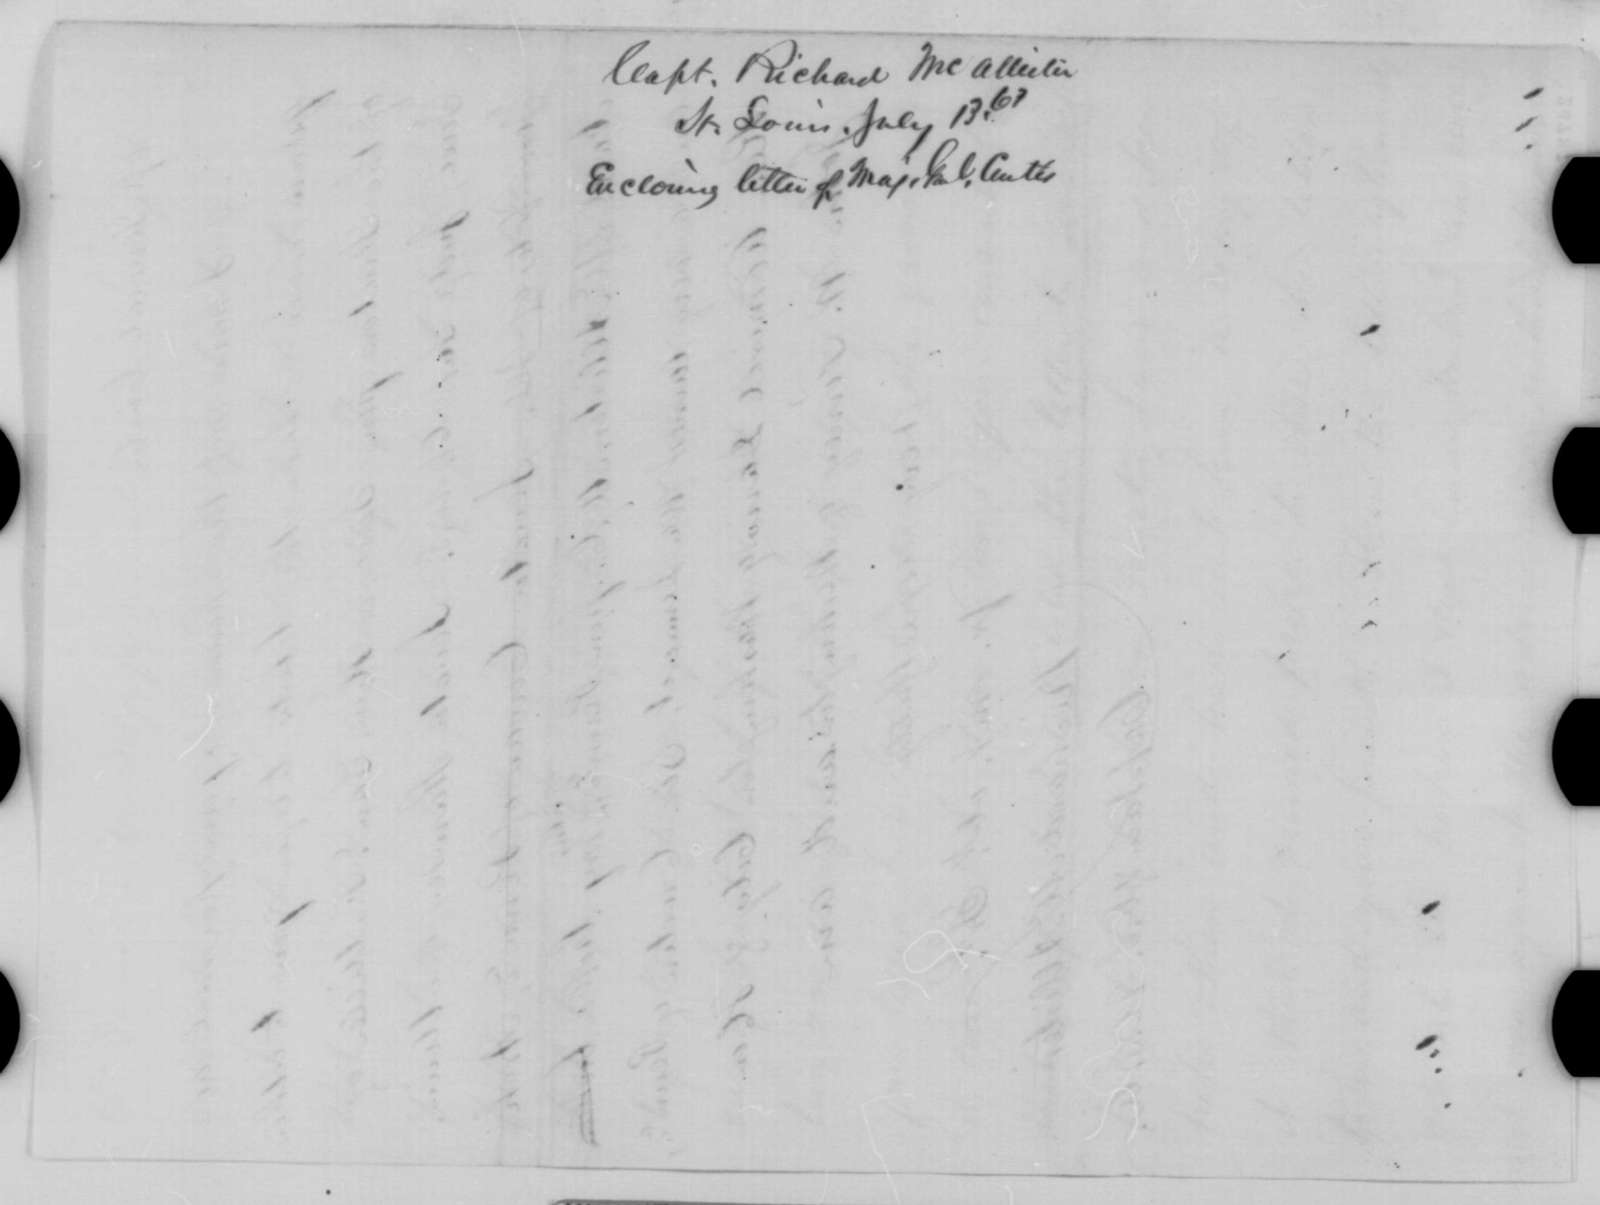 Richard McAllister to Abraham Lincoln, Monday, July 13, 1863  (General Samuel Curtis and military affairs in Missouri)